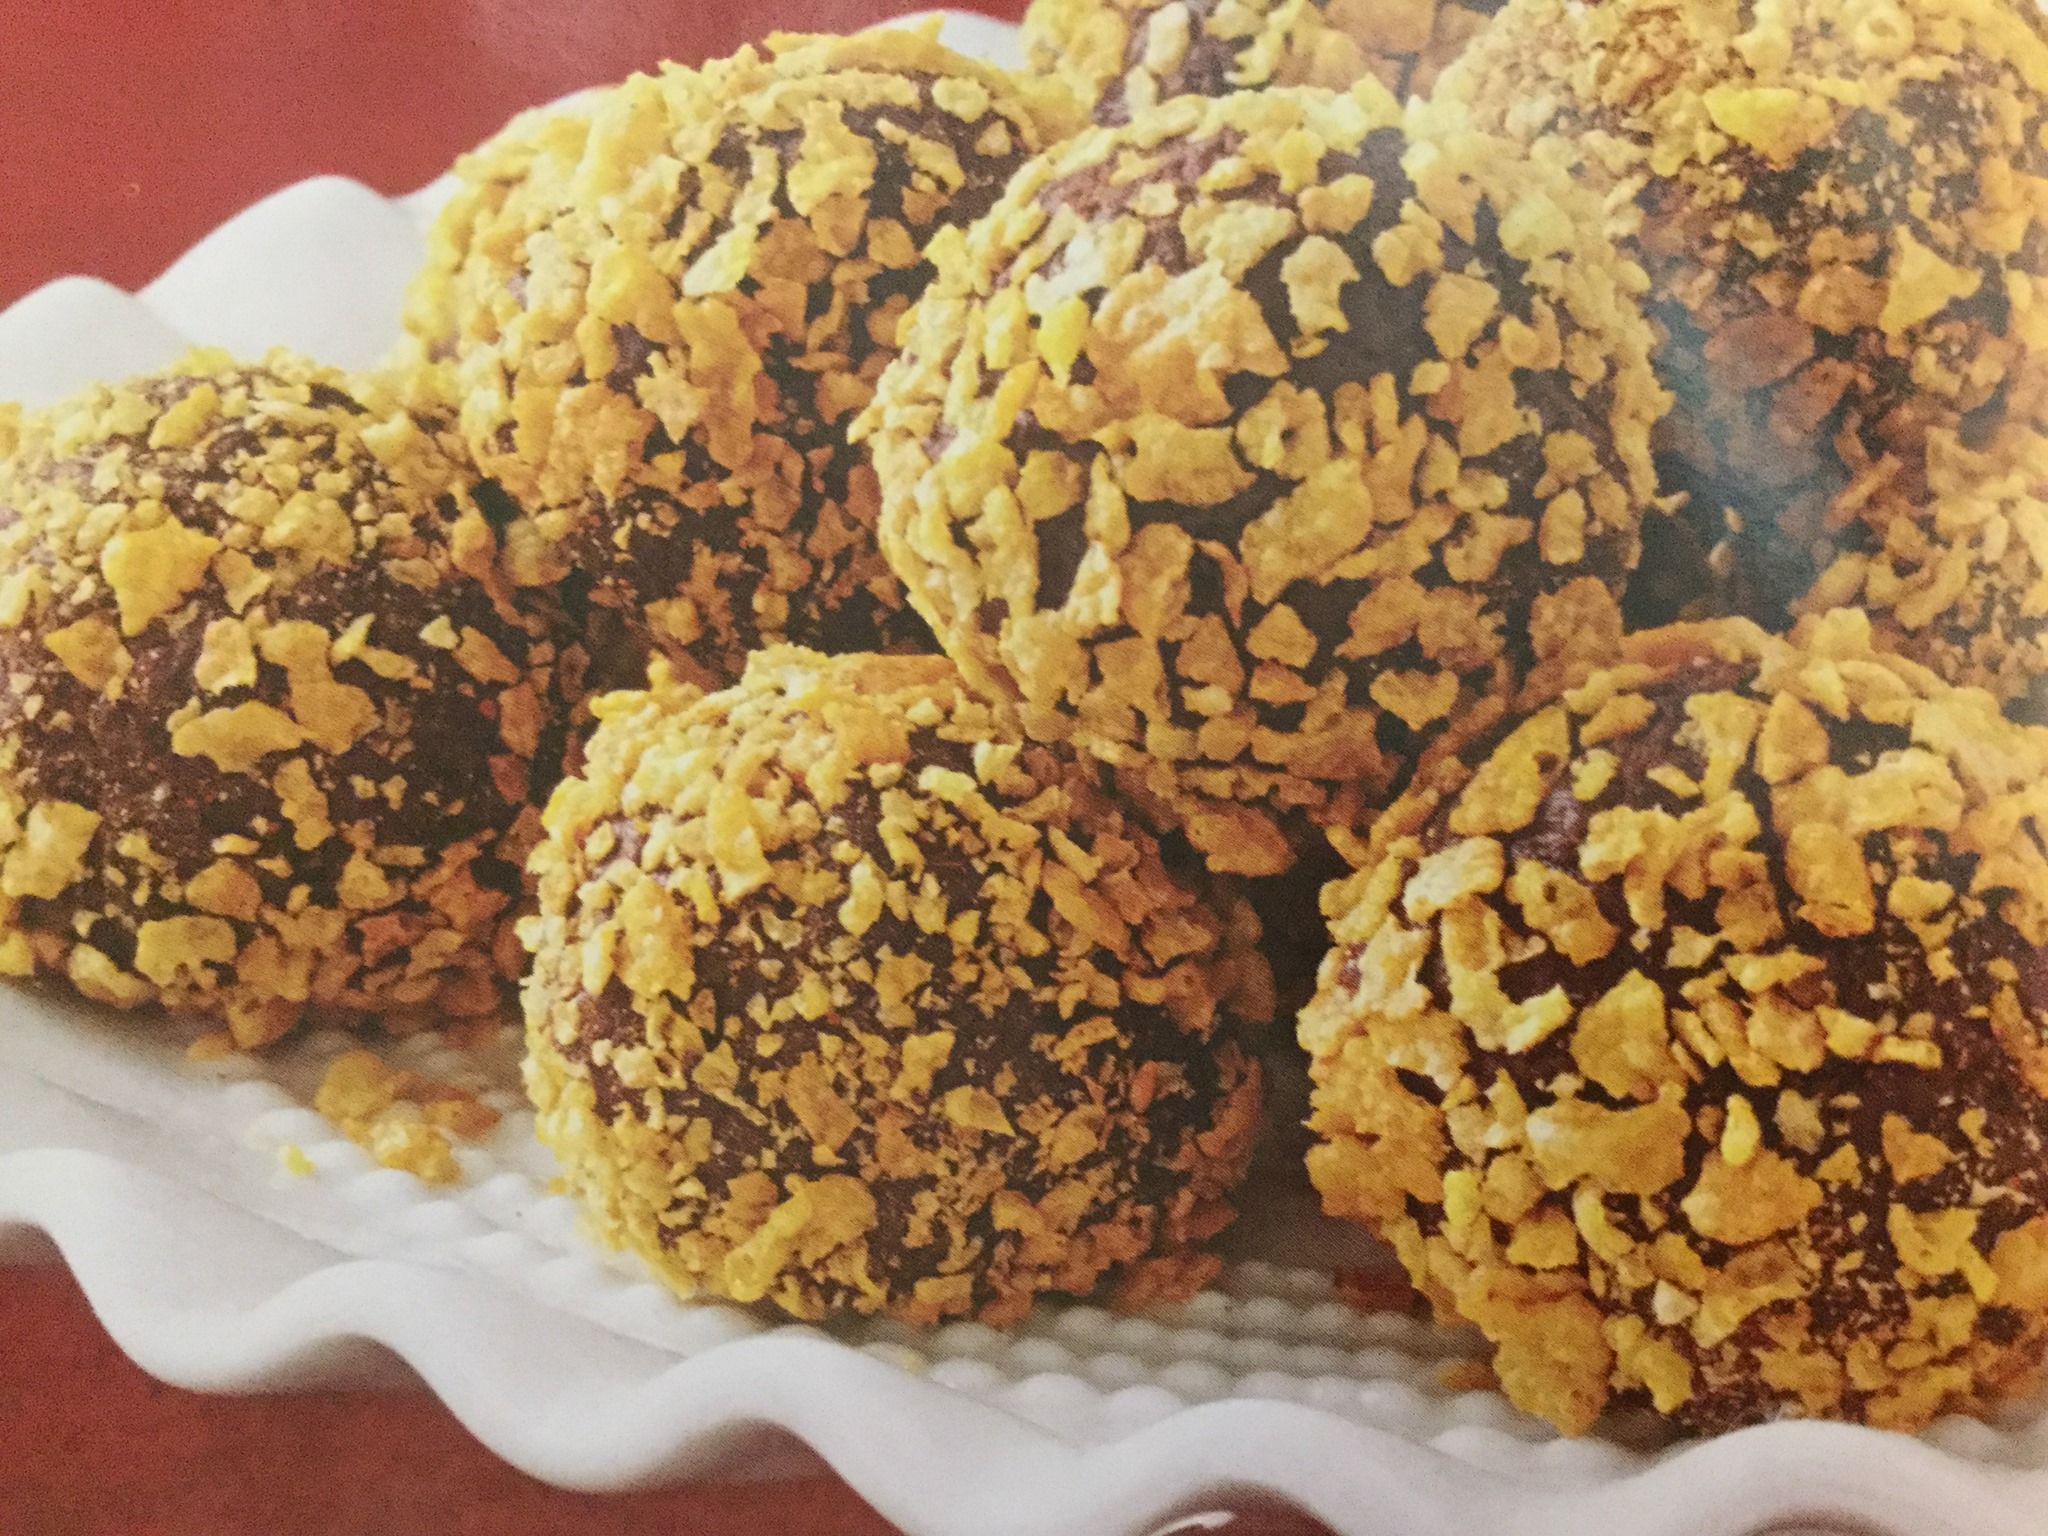 Spicy And Crunchy Mexican Truffles